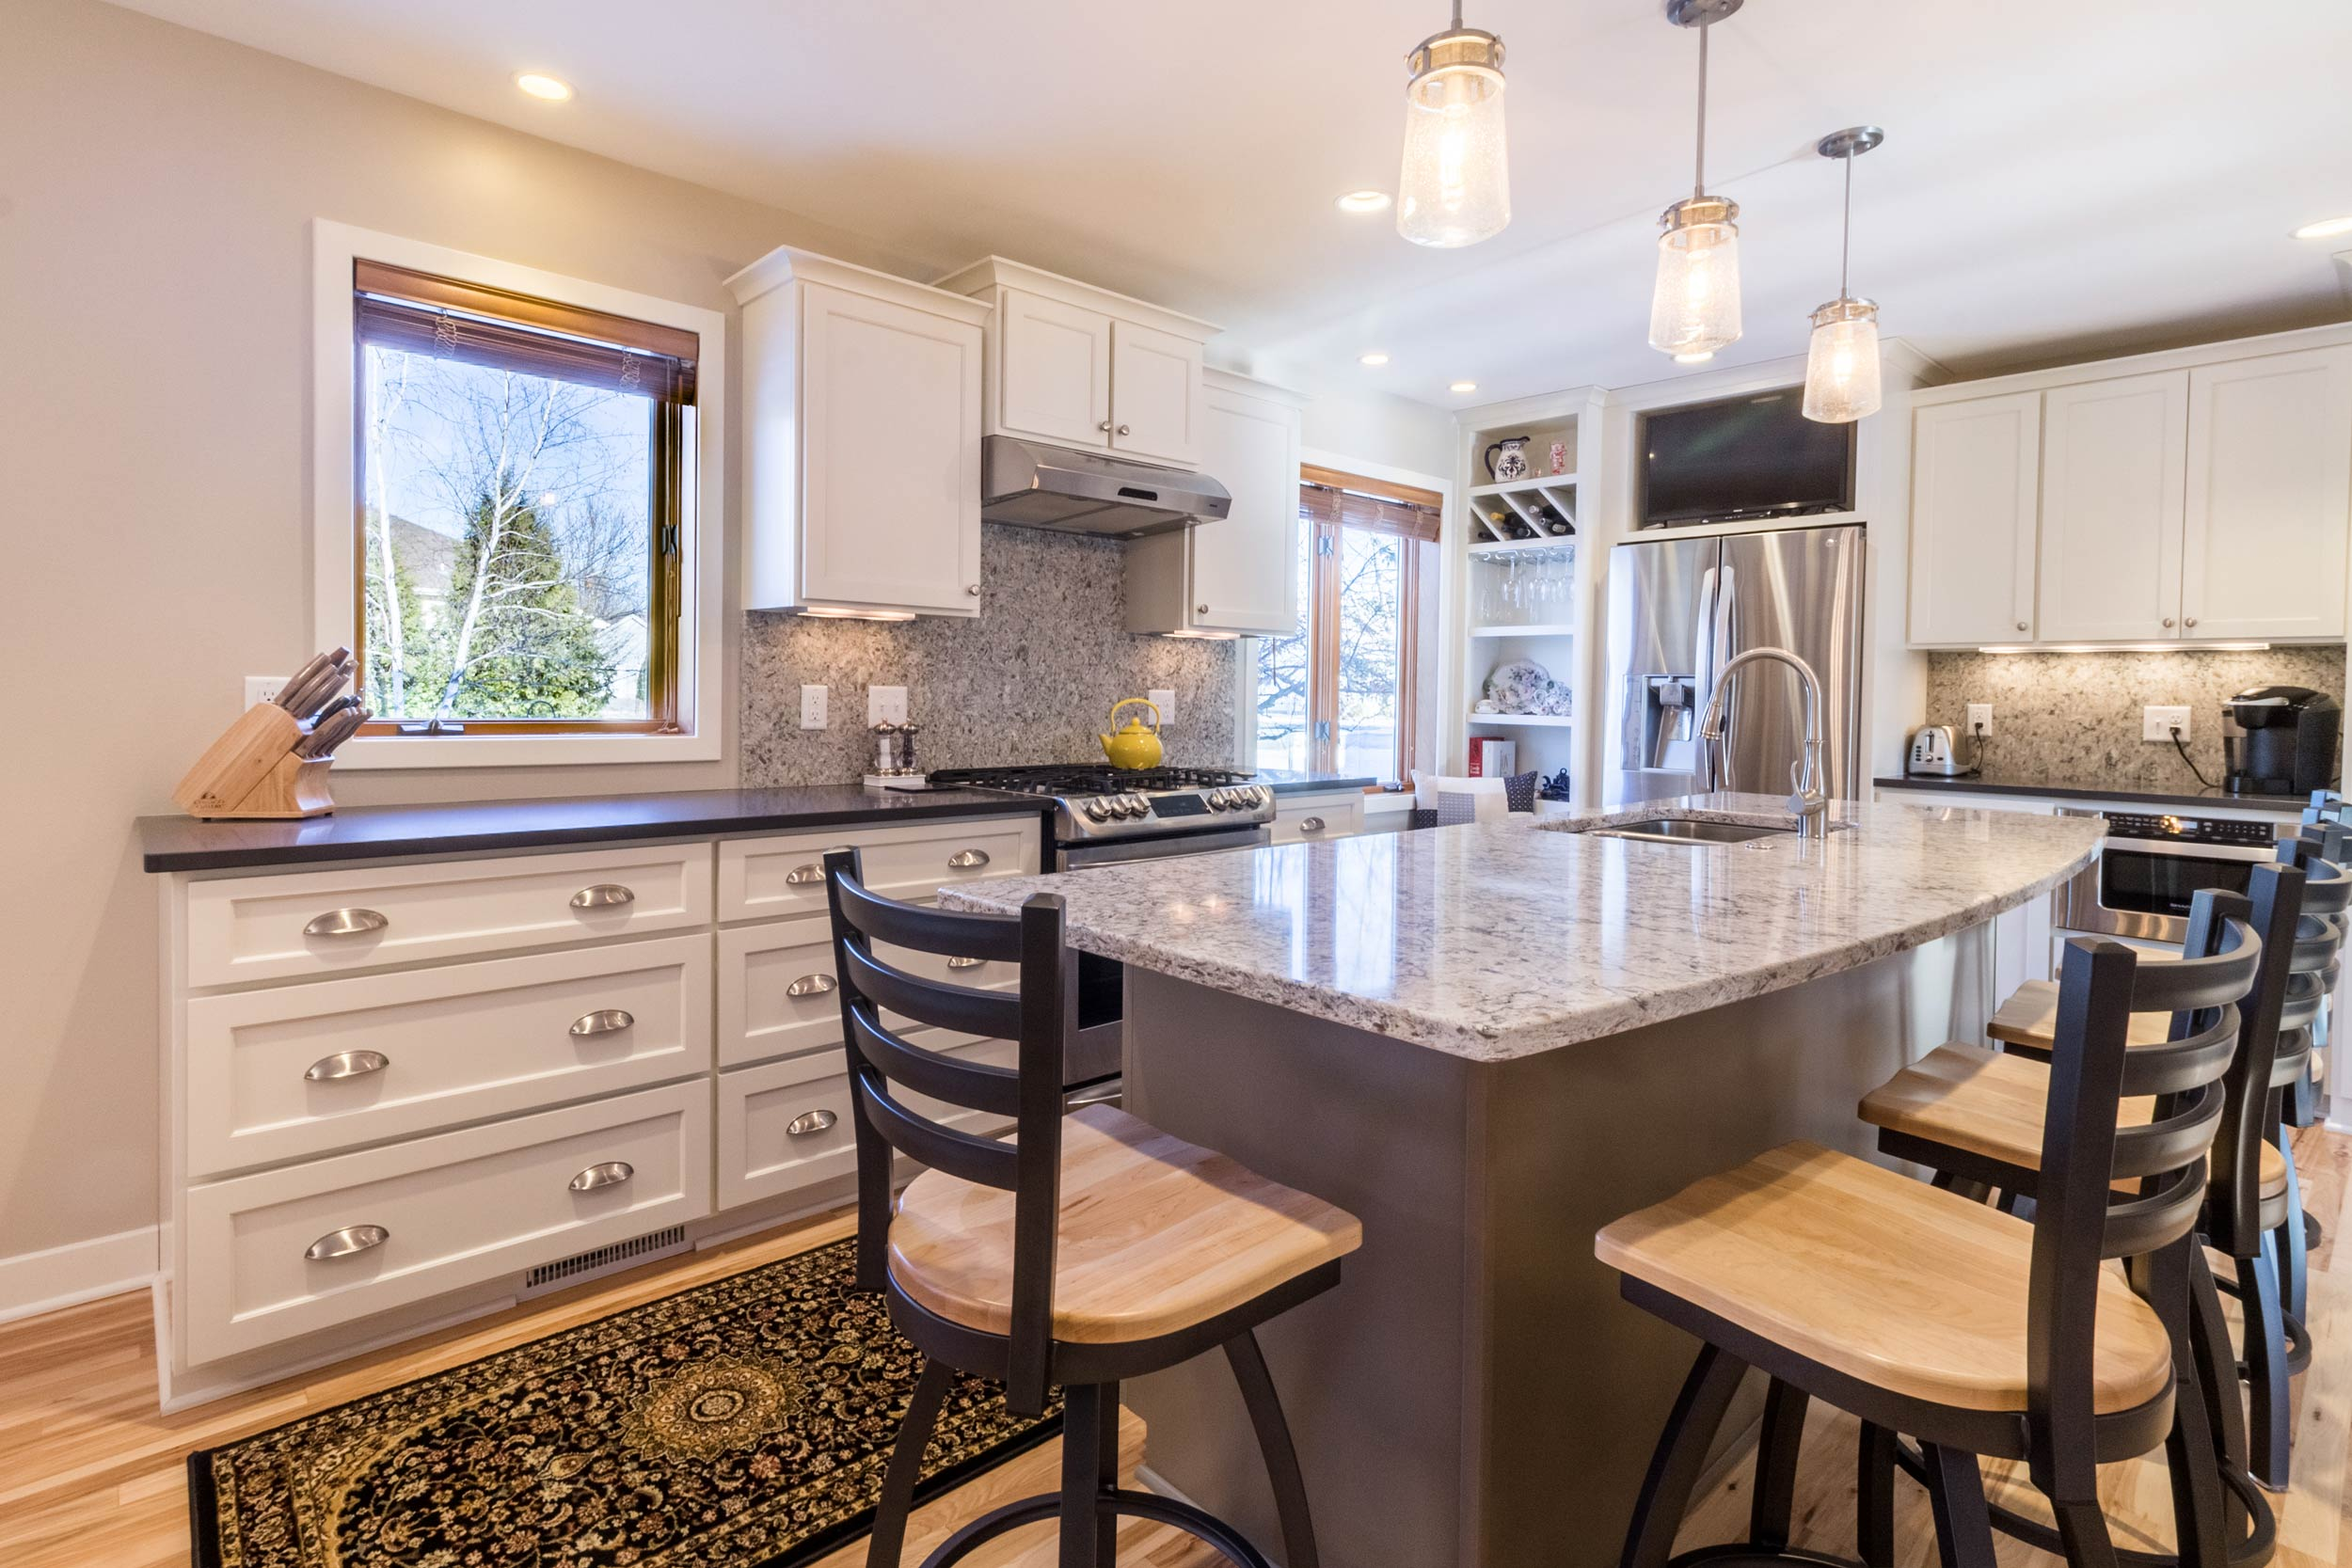 Choosing Kitchen Cabinet Hardware For A Remodeling Project